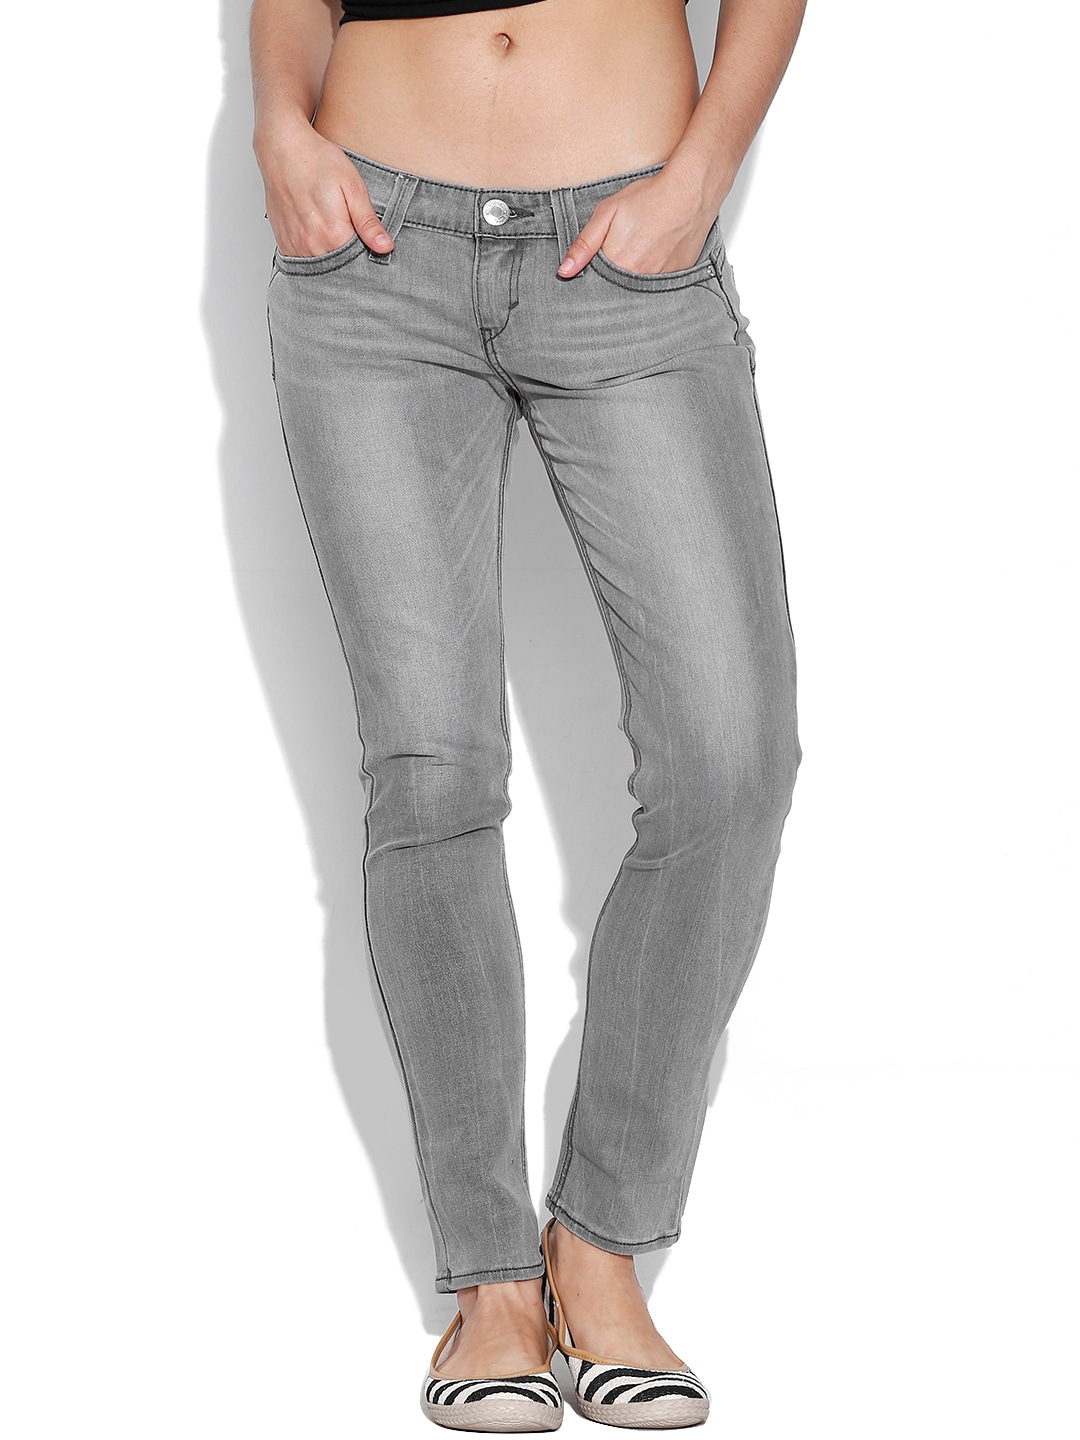 Levis 15436-0028 Grey Skinny Fit Jeans- Price in India